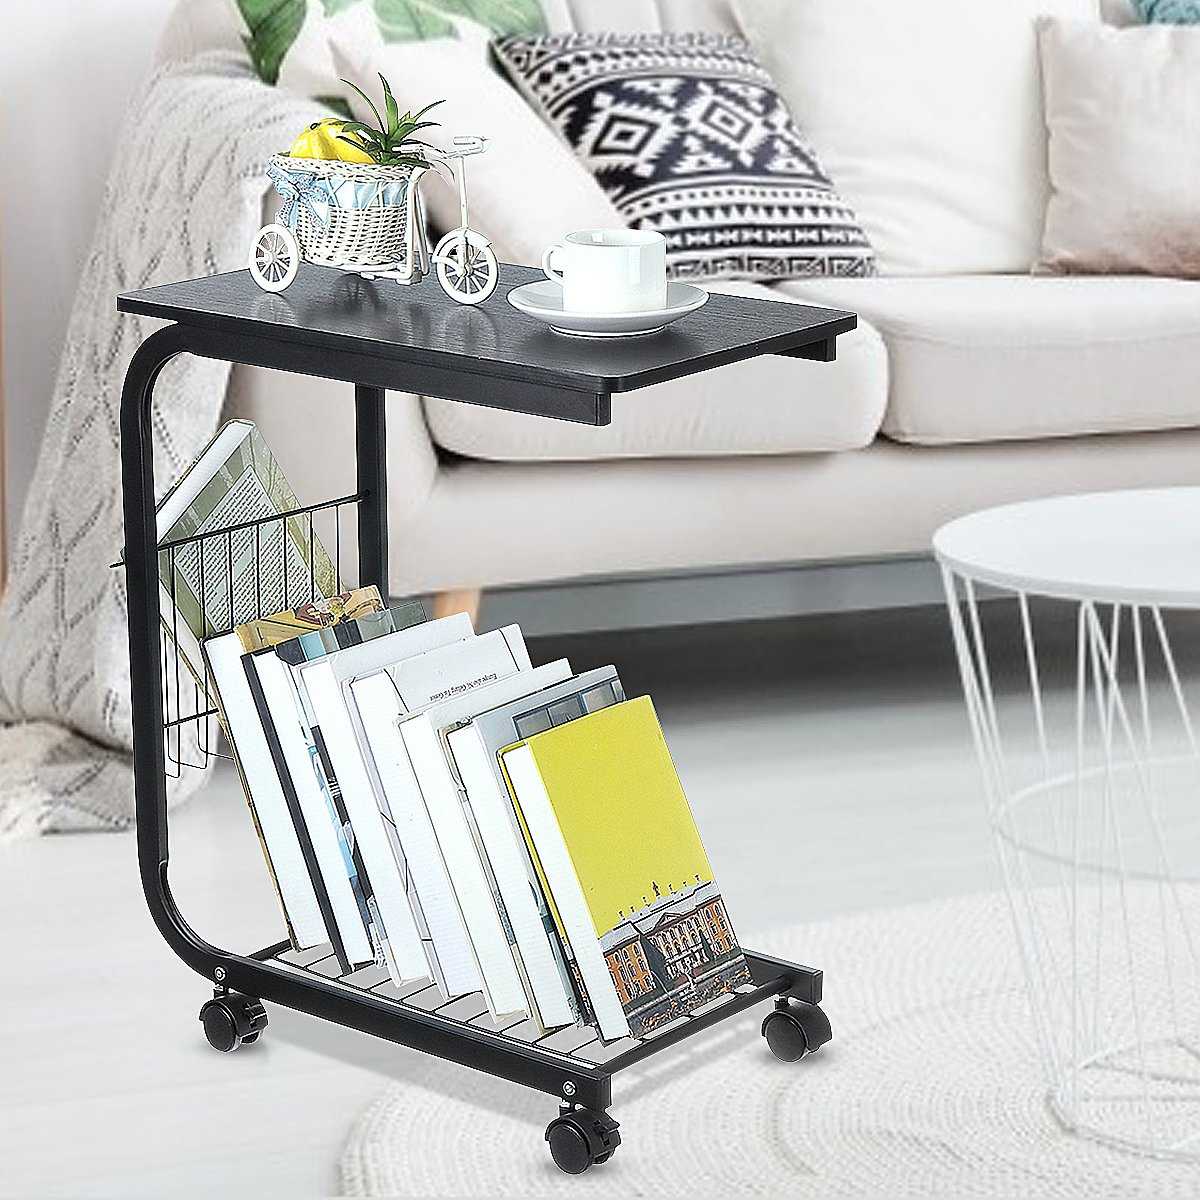 C Shaped End Tables Storage Rack Bedside Table with Lockable Casters Storage Saving Space Snack Tray Table Black/White